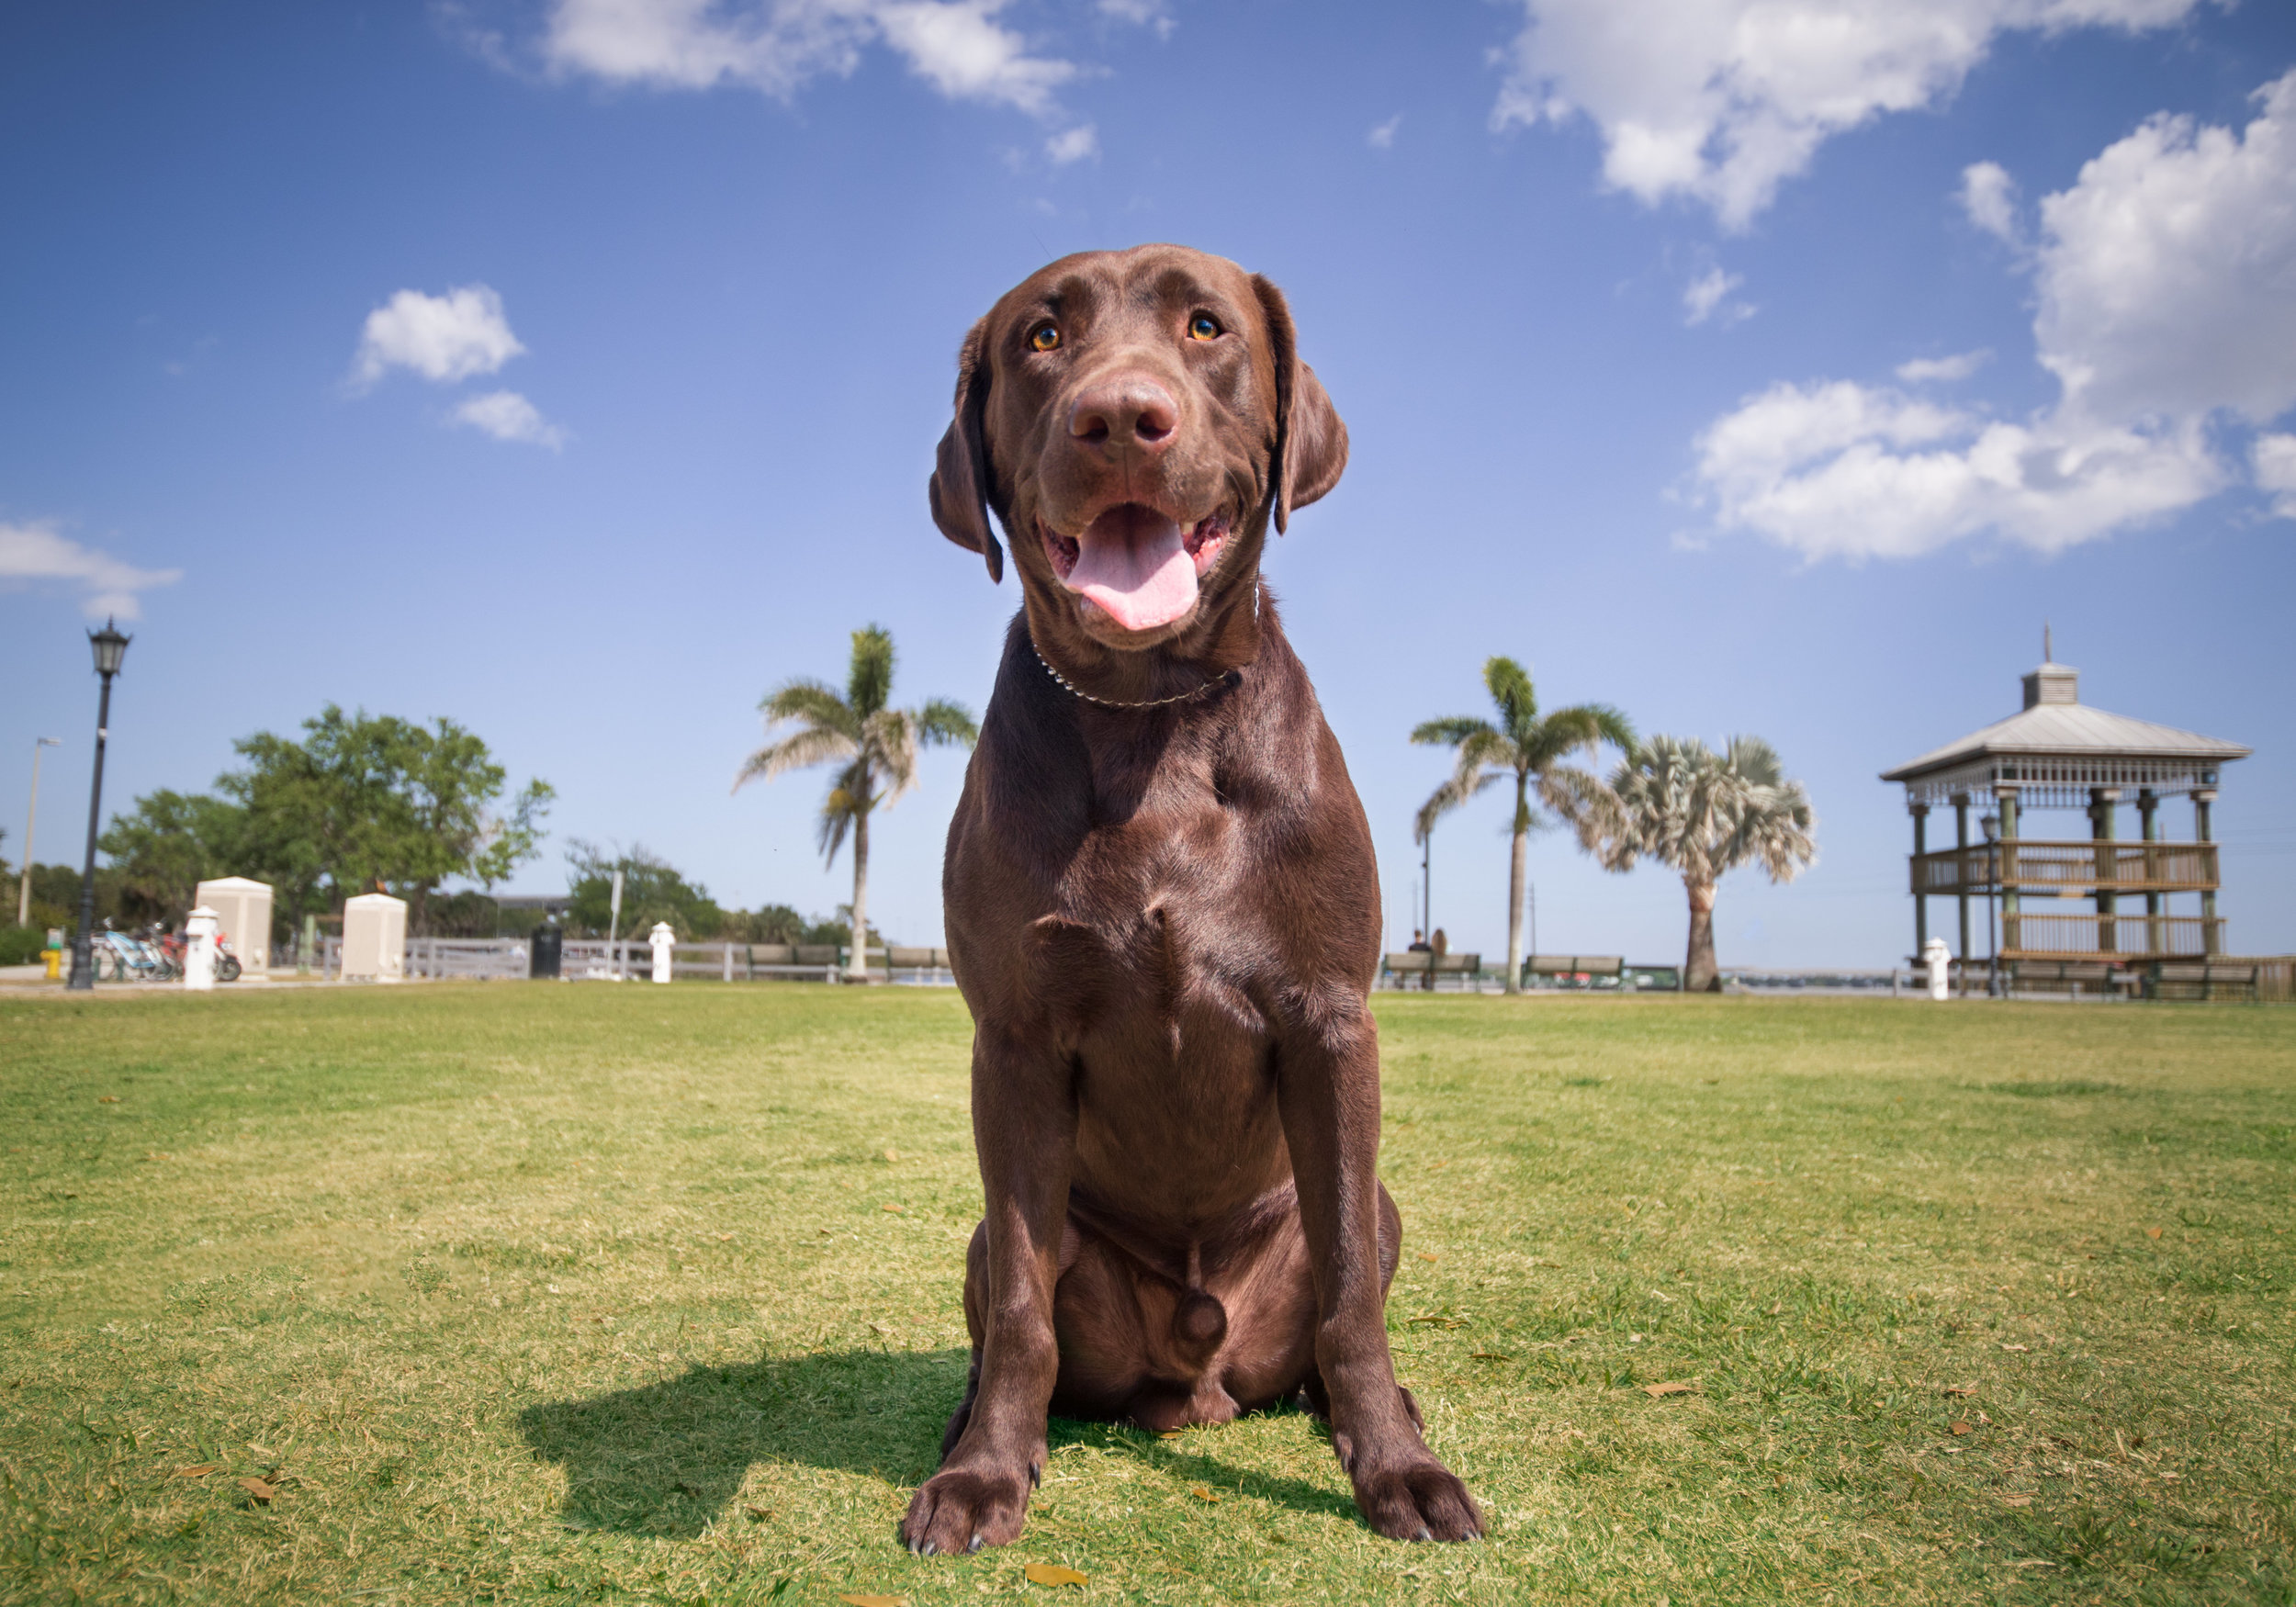 Hercules is an energetic 2-year-old lab who is still learning how to walk nicely on a leash, but will sit pretty and smile if treats are involved! He had a wonderful time visiting the Cocoa Village Riverfront area for the first time this Spring. There was plenty of sun, green grass, and beautiful scenery for him to enjoy!